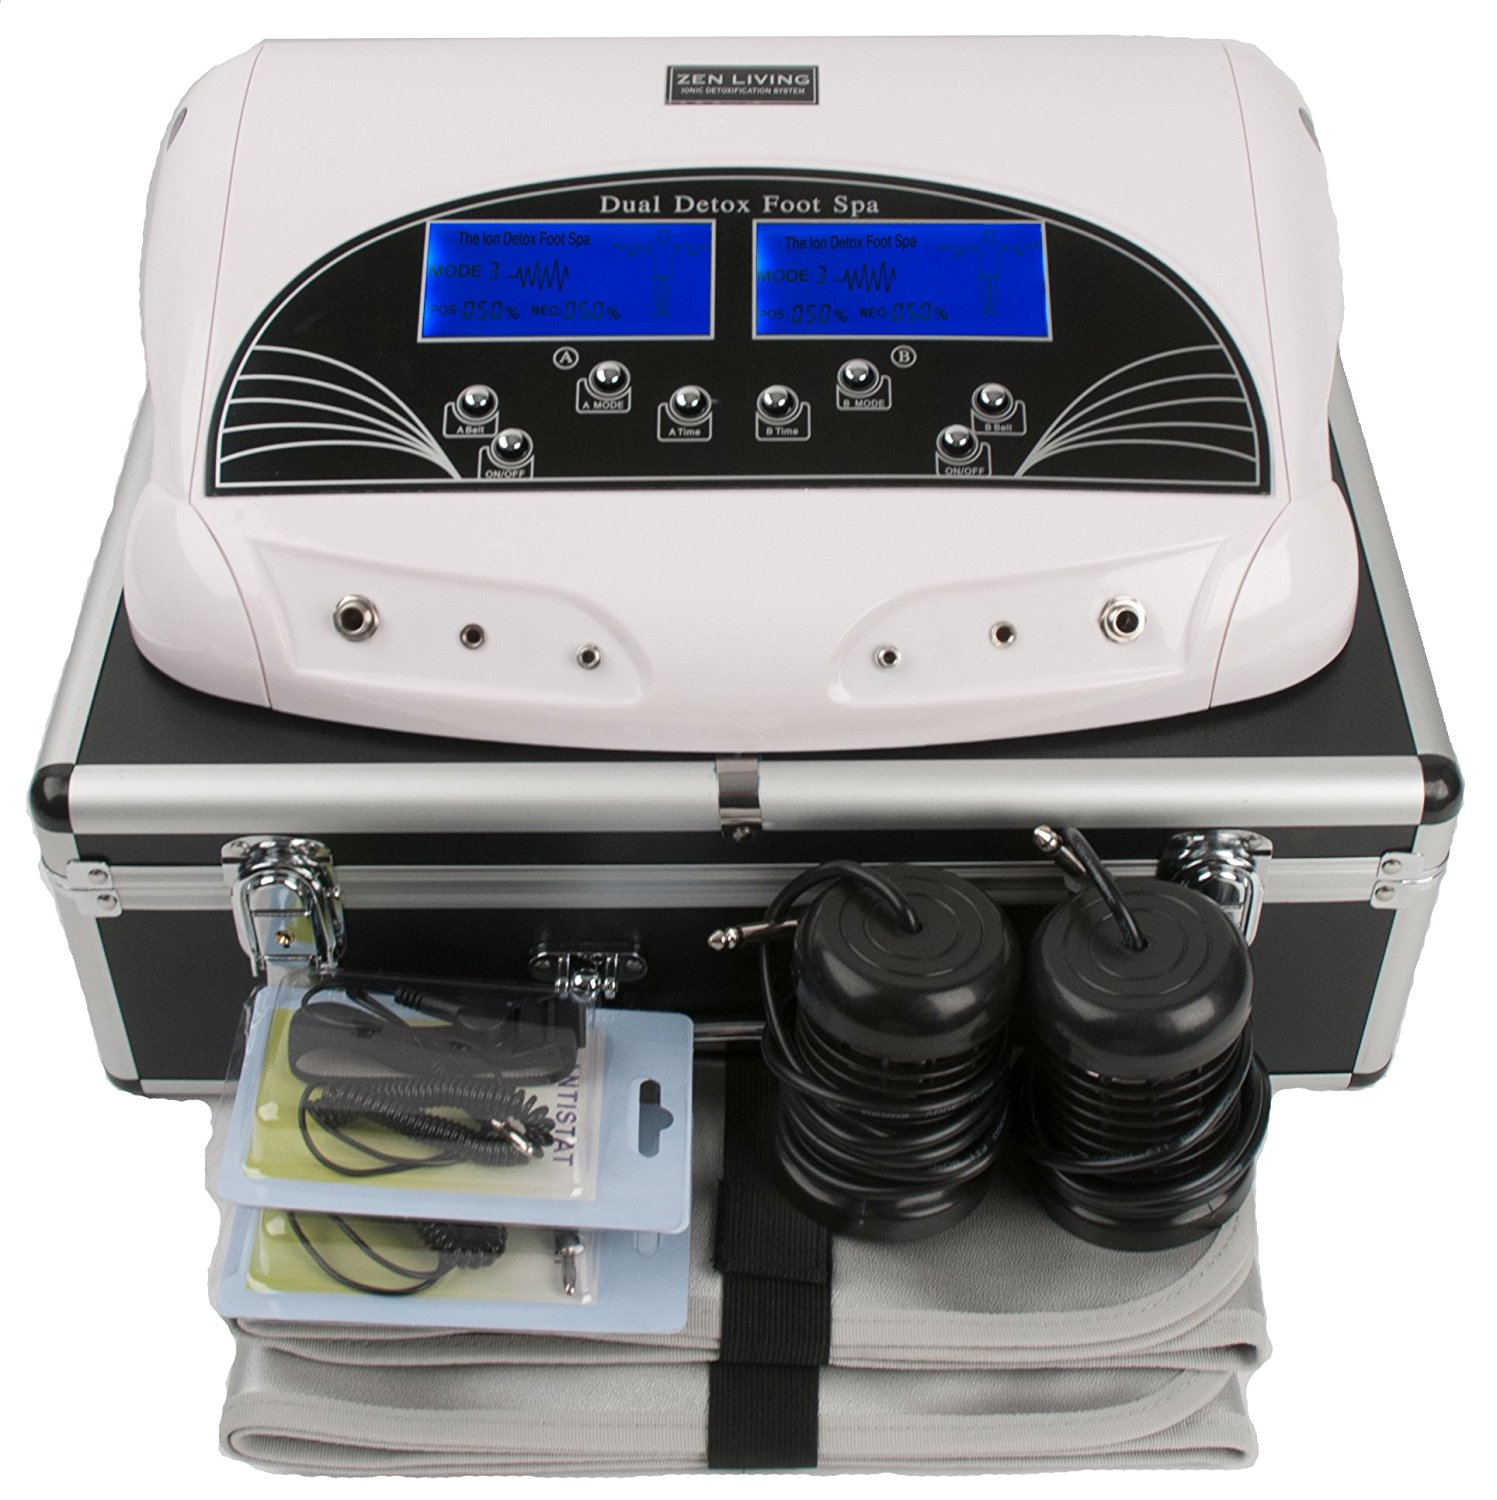 detox foot spa machine price in india